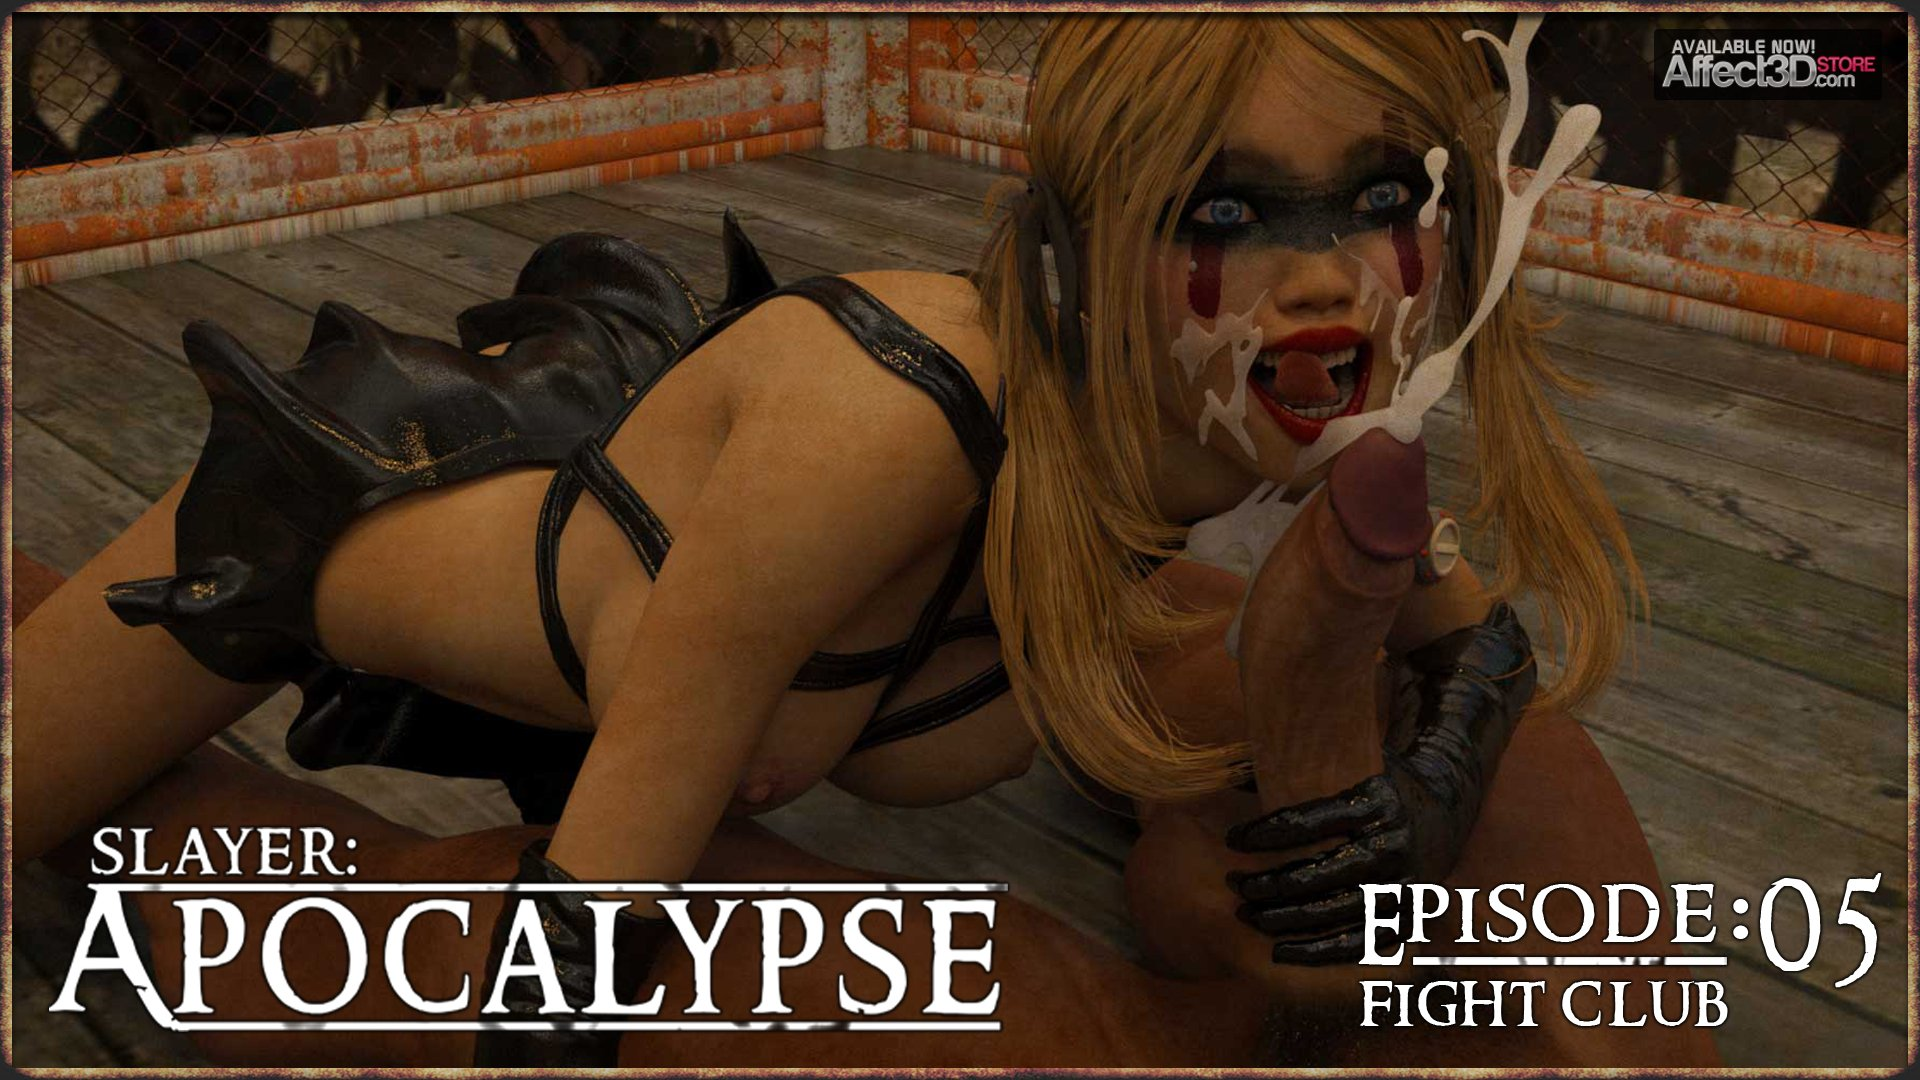 New Releases: Futa Dream, Slayer: Apocalypse 05, and Nocturnal Invasions